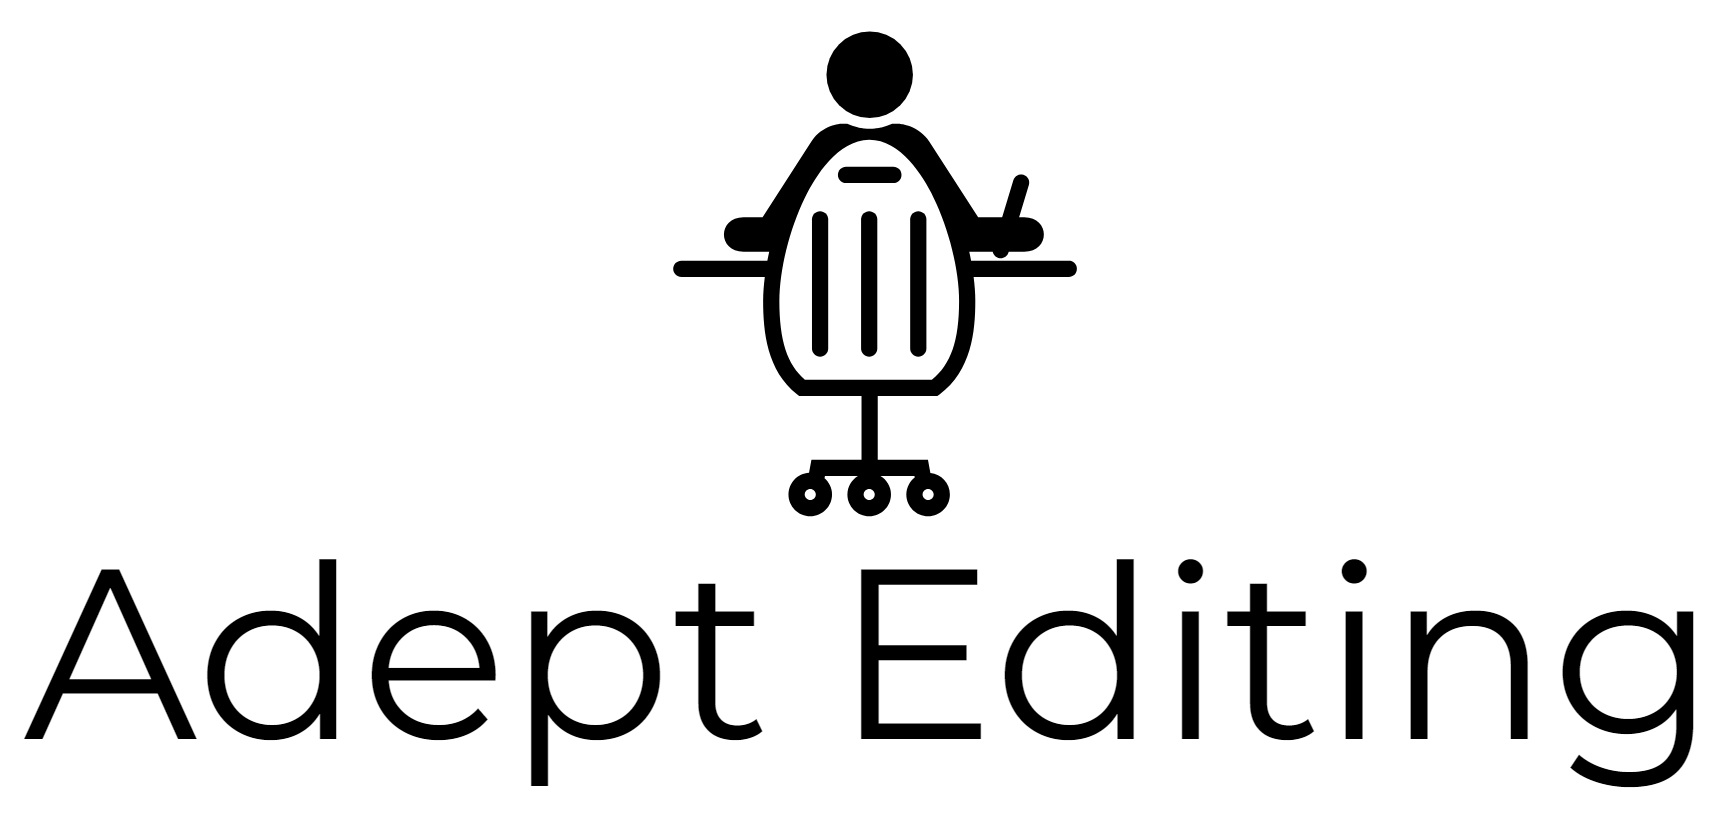 Adept+Editing-logo-black.jpg